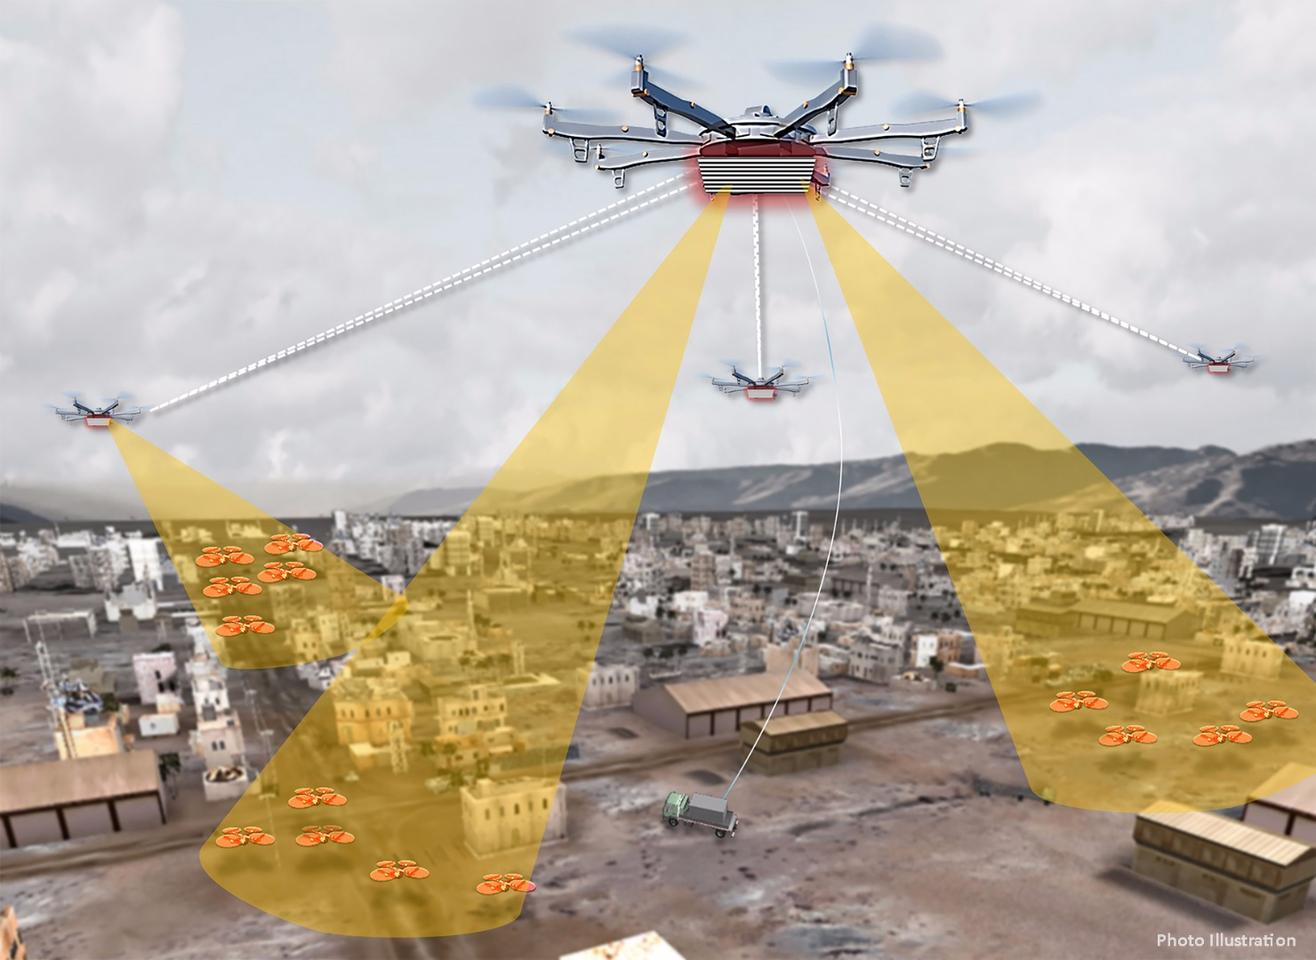 Artist's concept shows elements of a notional Aerial Dragnet system – several UAS carrying sensors form a network that provides wide-area surveillance of all low-flying UAS in an urban setting